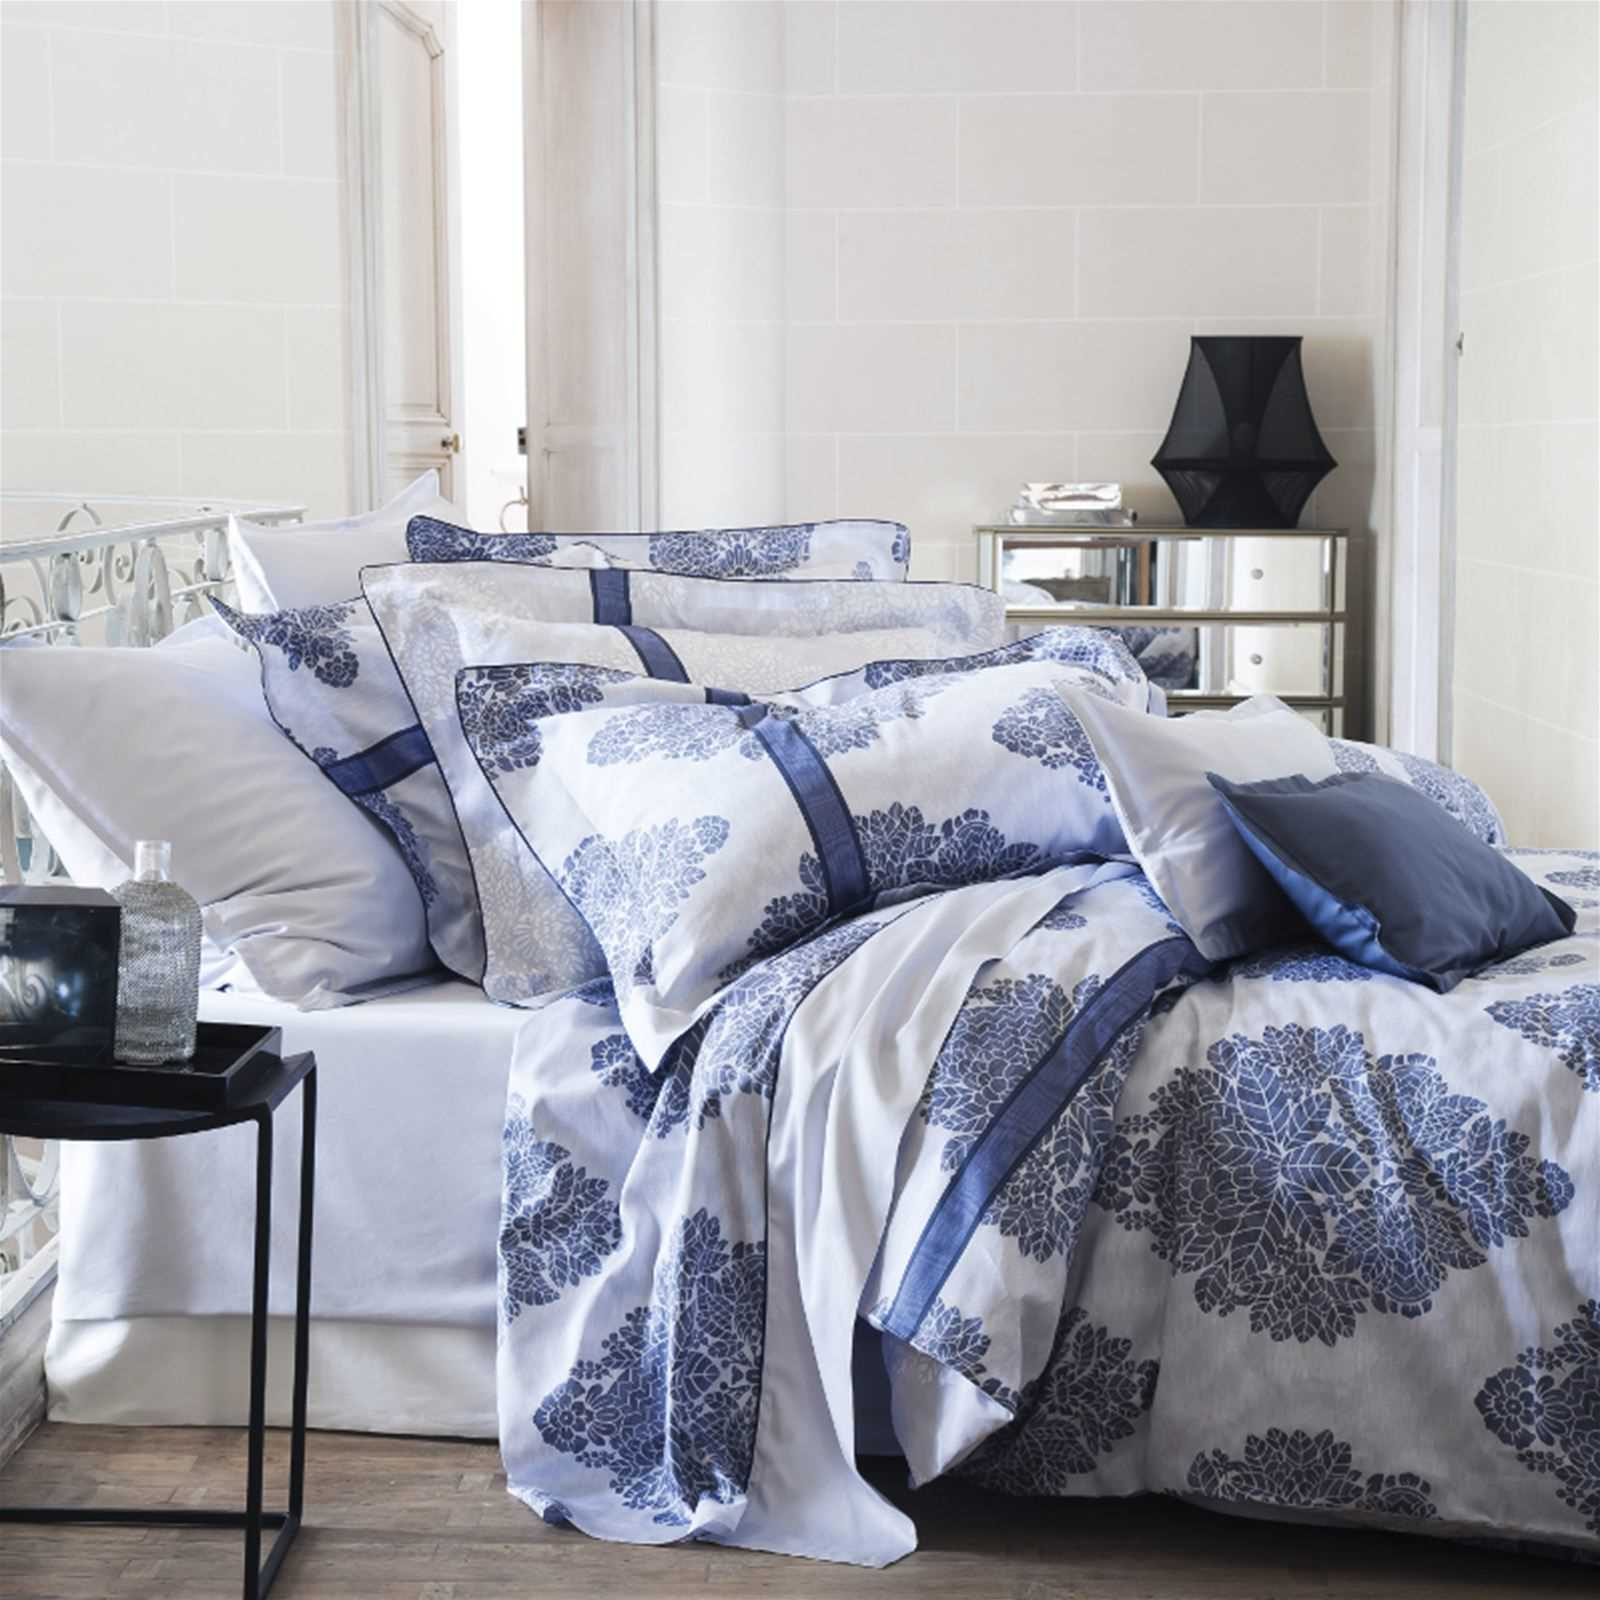 alexandre turpault quai branly housse de couette bleu. Black Bedroom Furniture Sets. Home Design Ideas